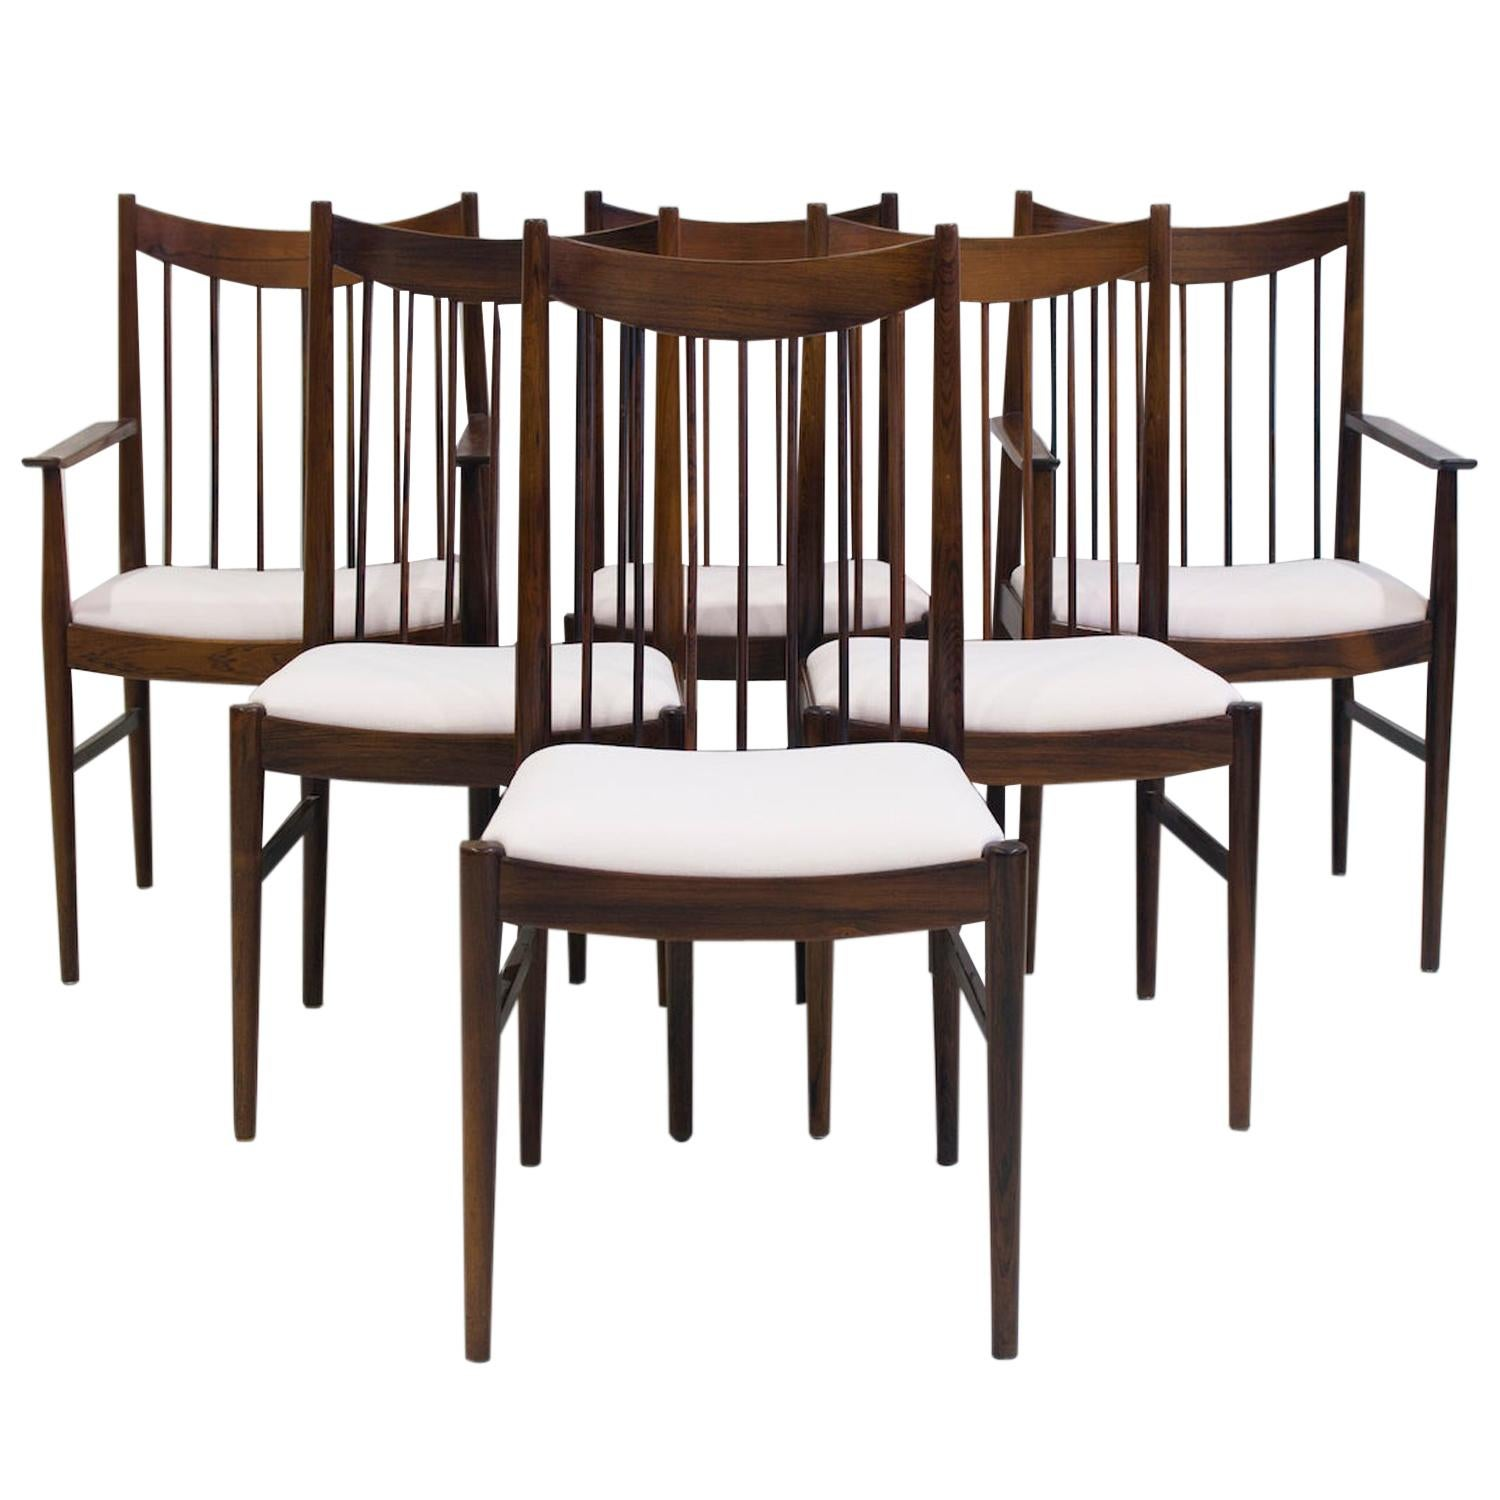 Set of Six Arne Vodder Dining Chairs, Model 422